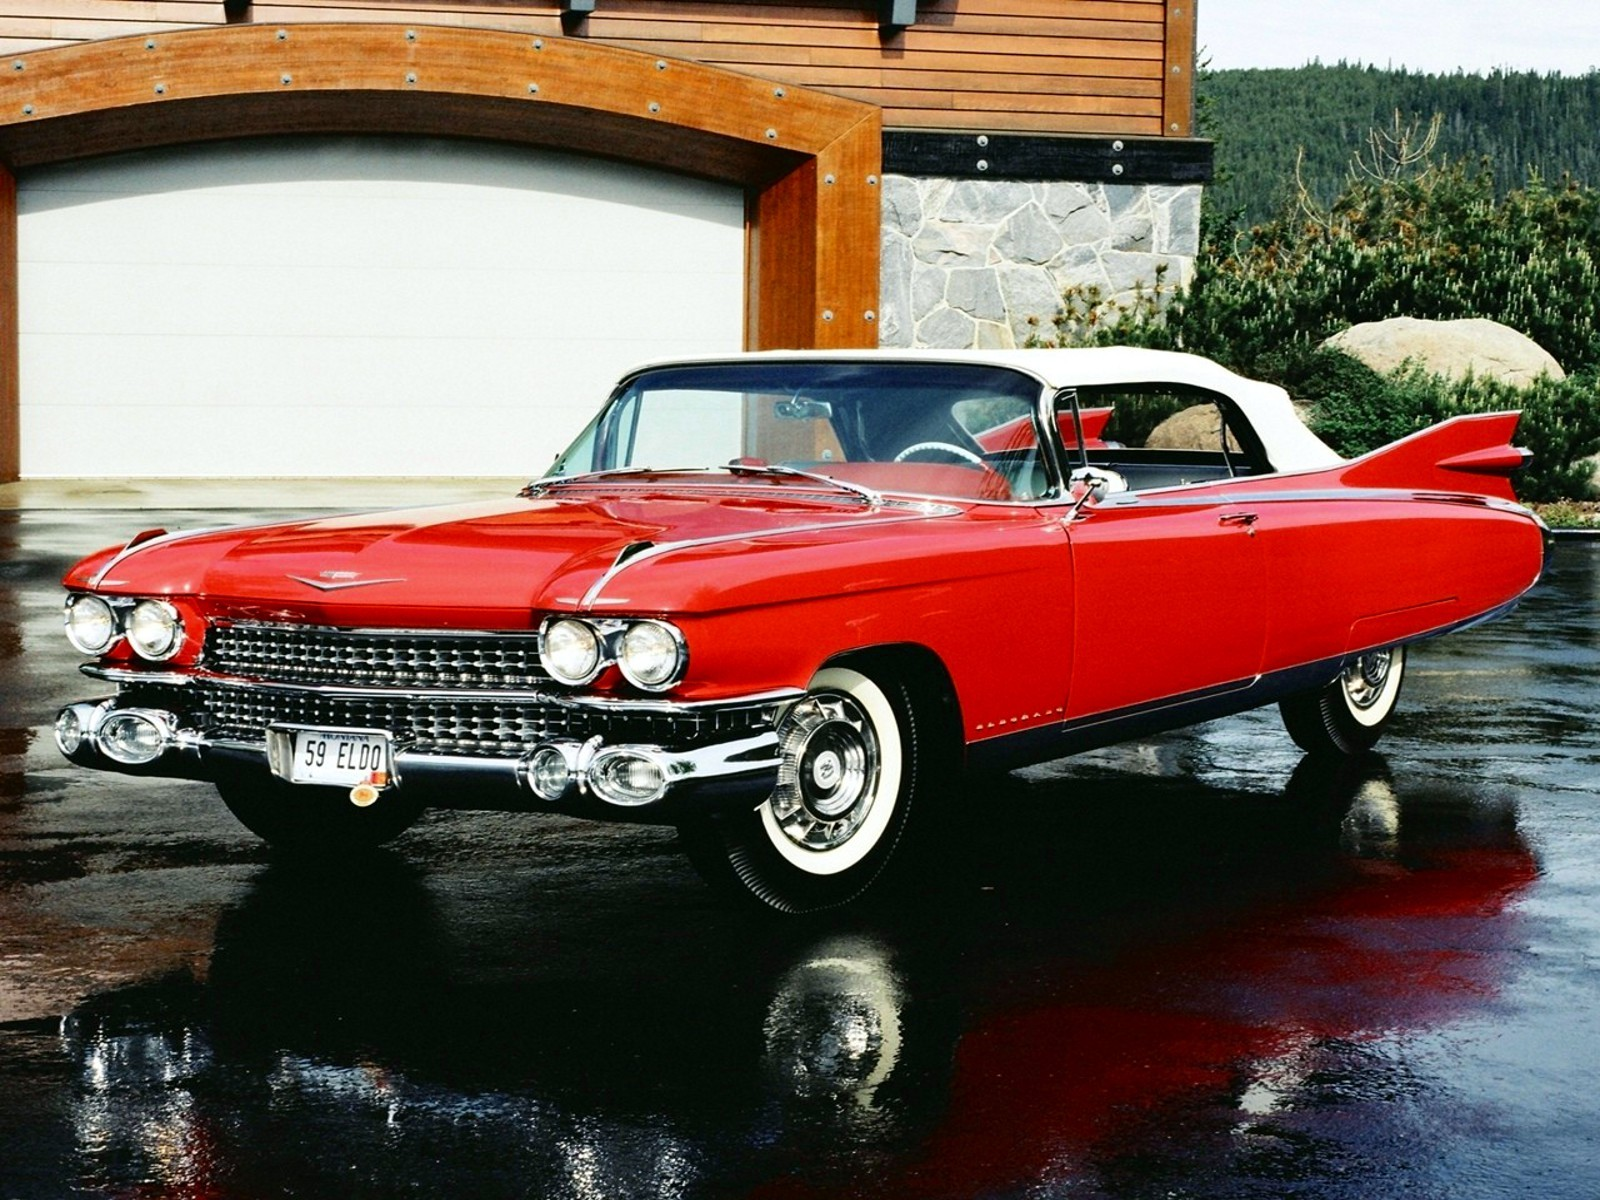 Car Wallpaper Slideshow 1 1959 Cadillac Eldorado Hd Wallpapers Backgrounds